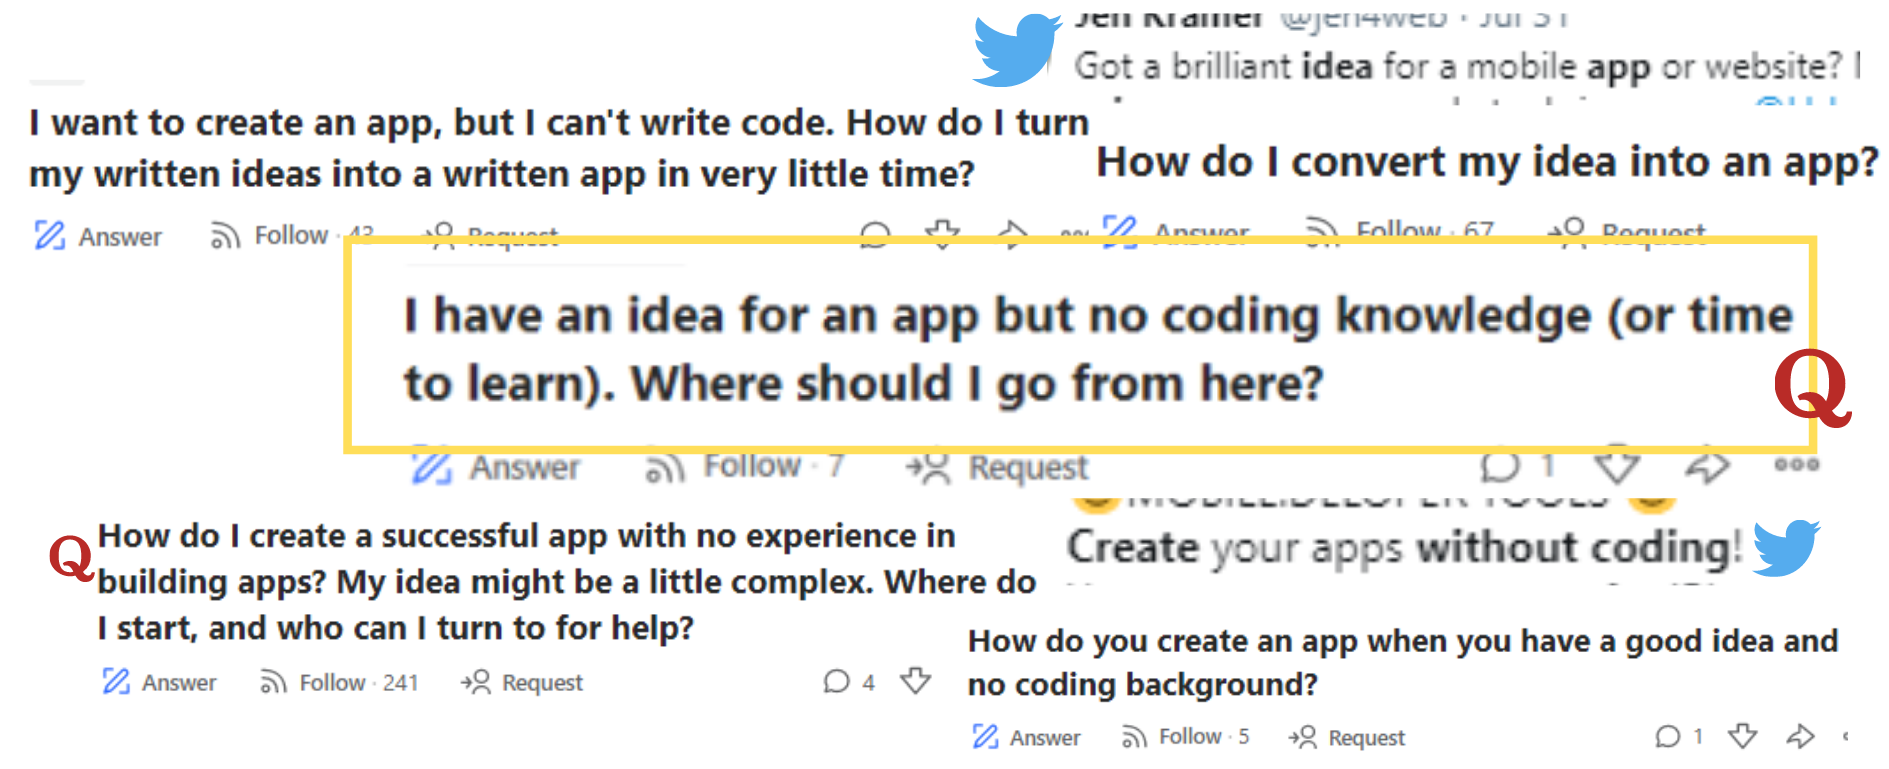 Idea for an app